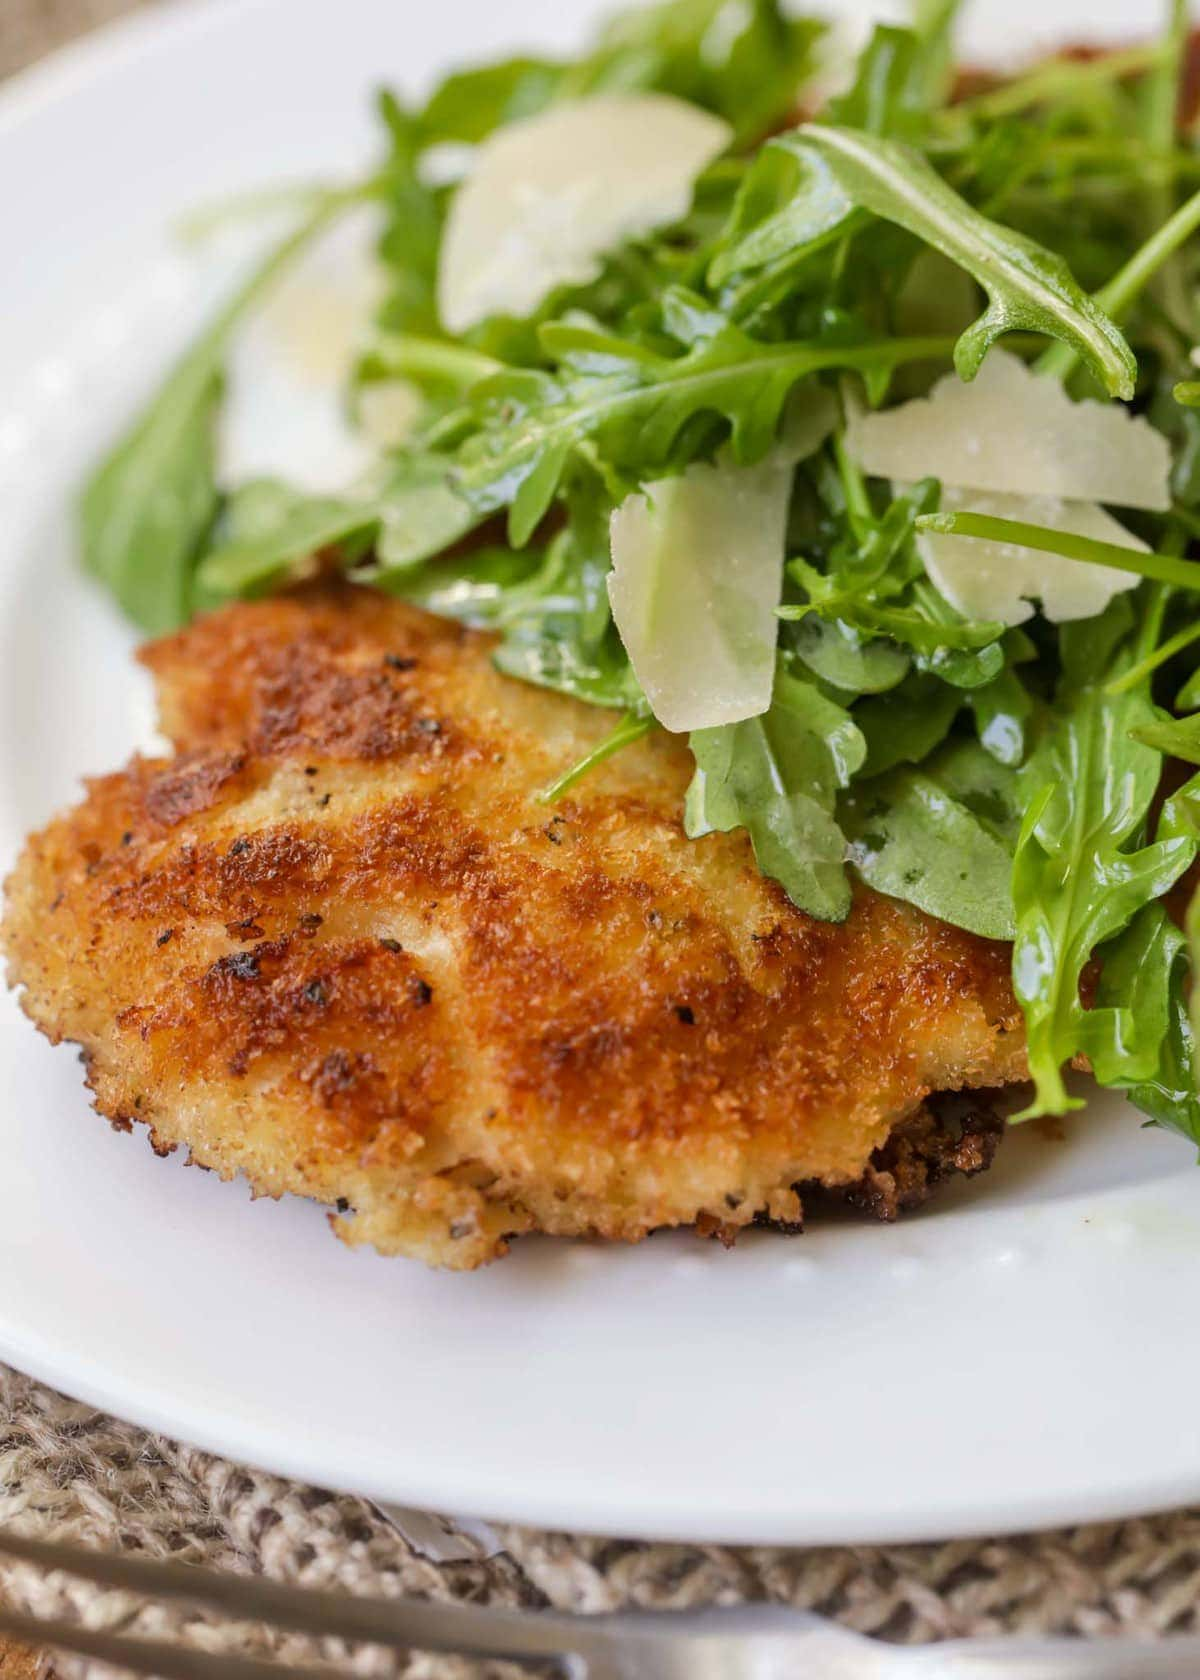 Fried chicken breast with arugula and shaved Parmesan cheese